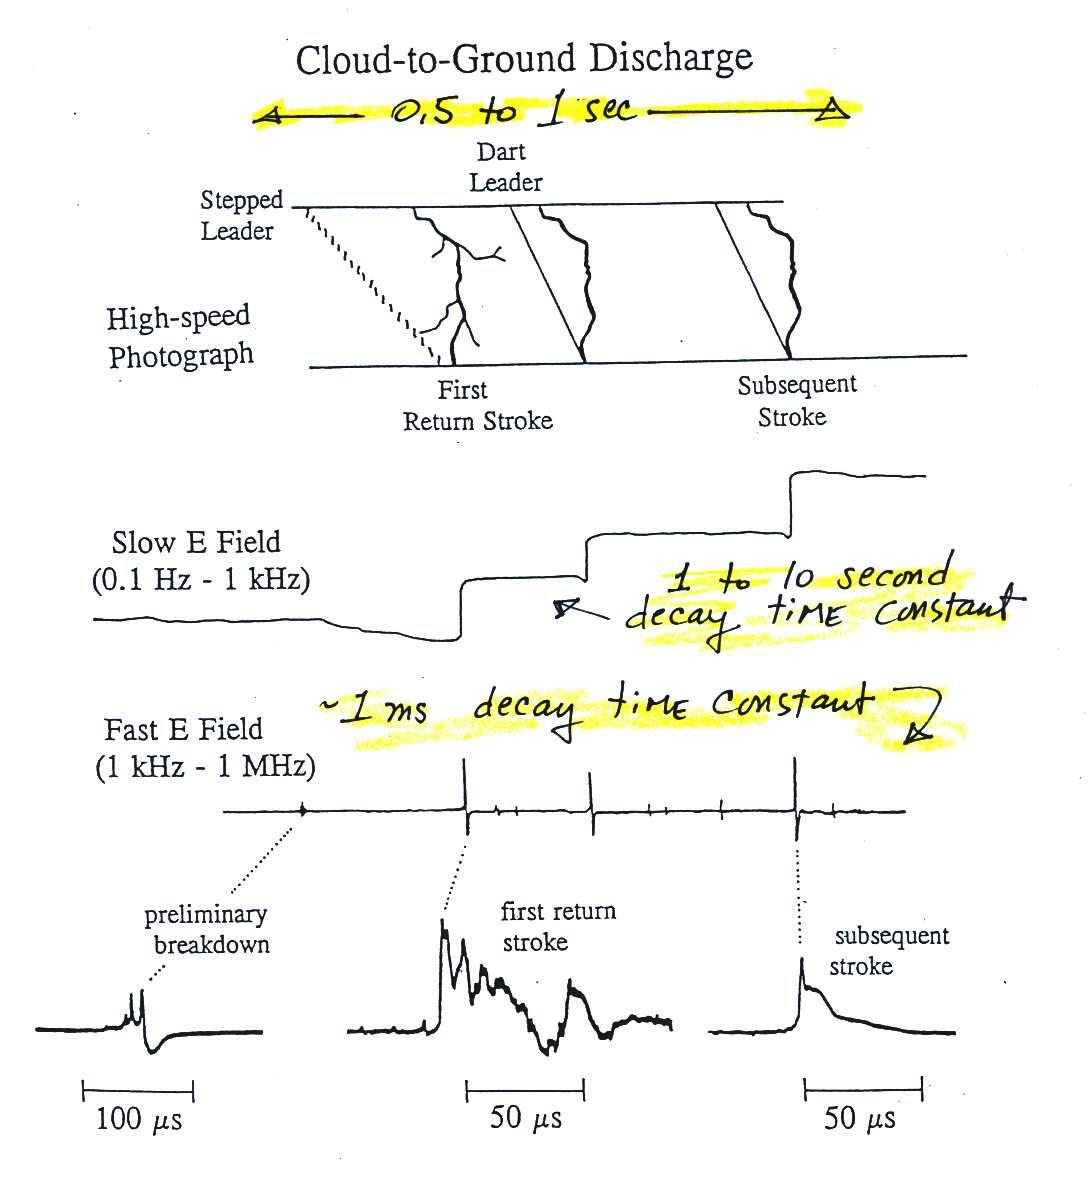 Lecture 5 Fast And Slow Electric Field Antennas Enhancement Circuit Current During Capacitor Discharge Are Shown Below Dont Worry About The Details On This Figure At Point Well Have A Detailed Look Processes That Occur Cloud To Ground Later